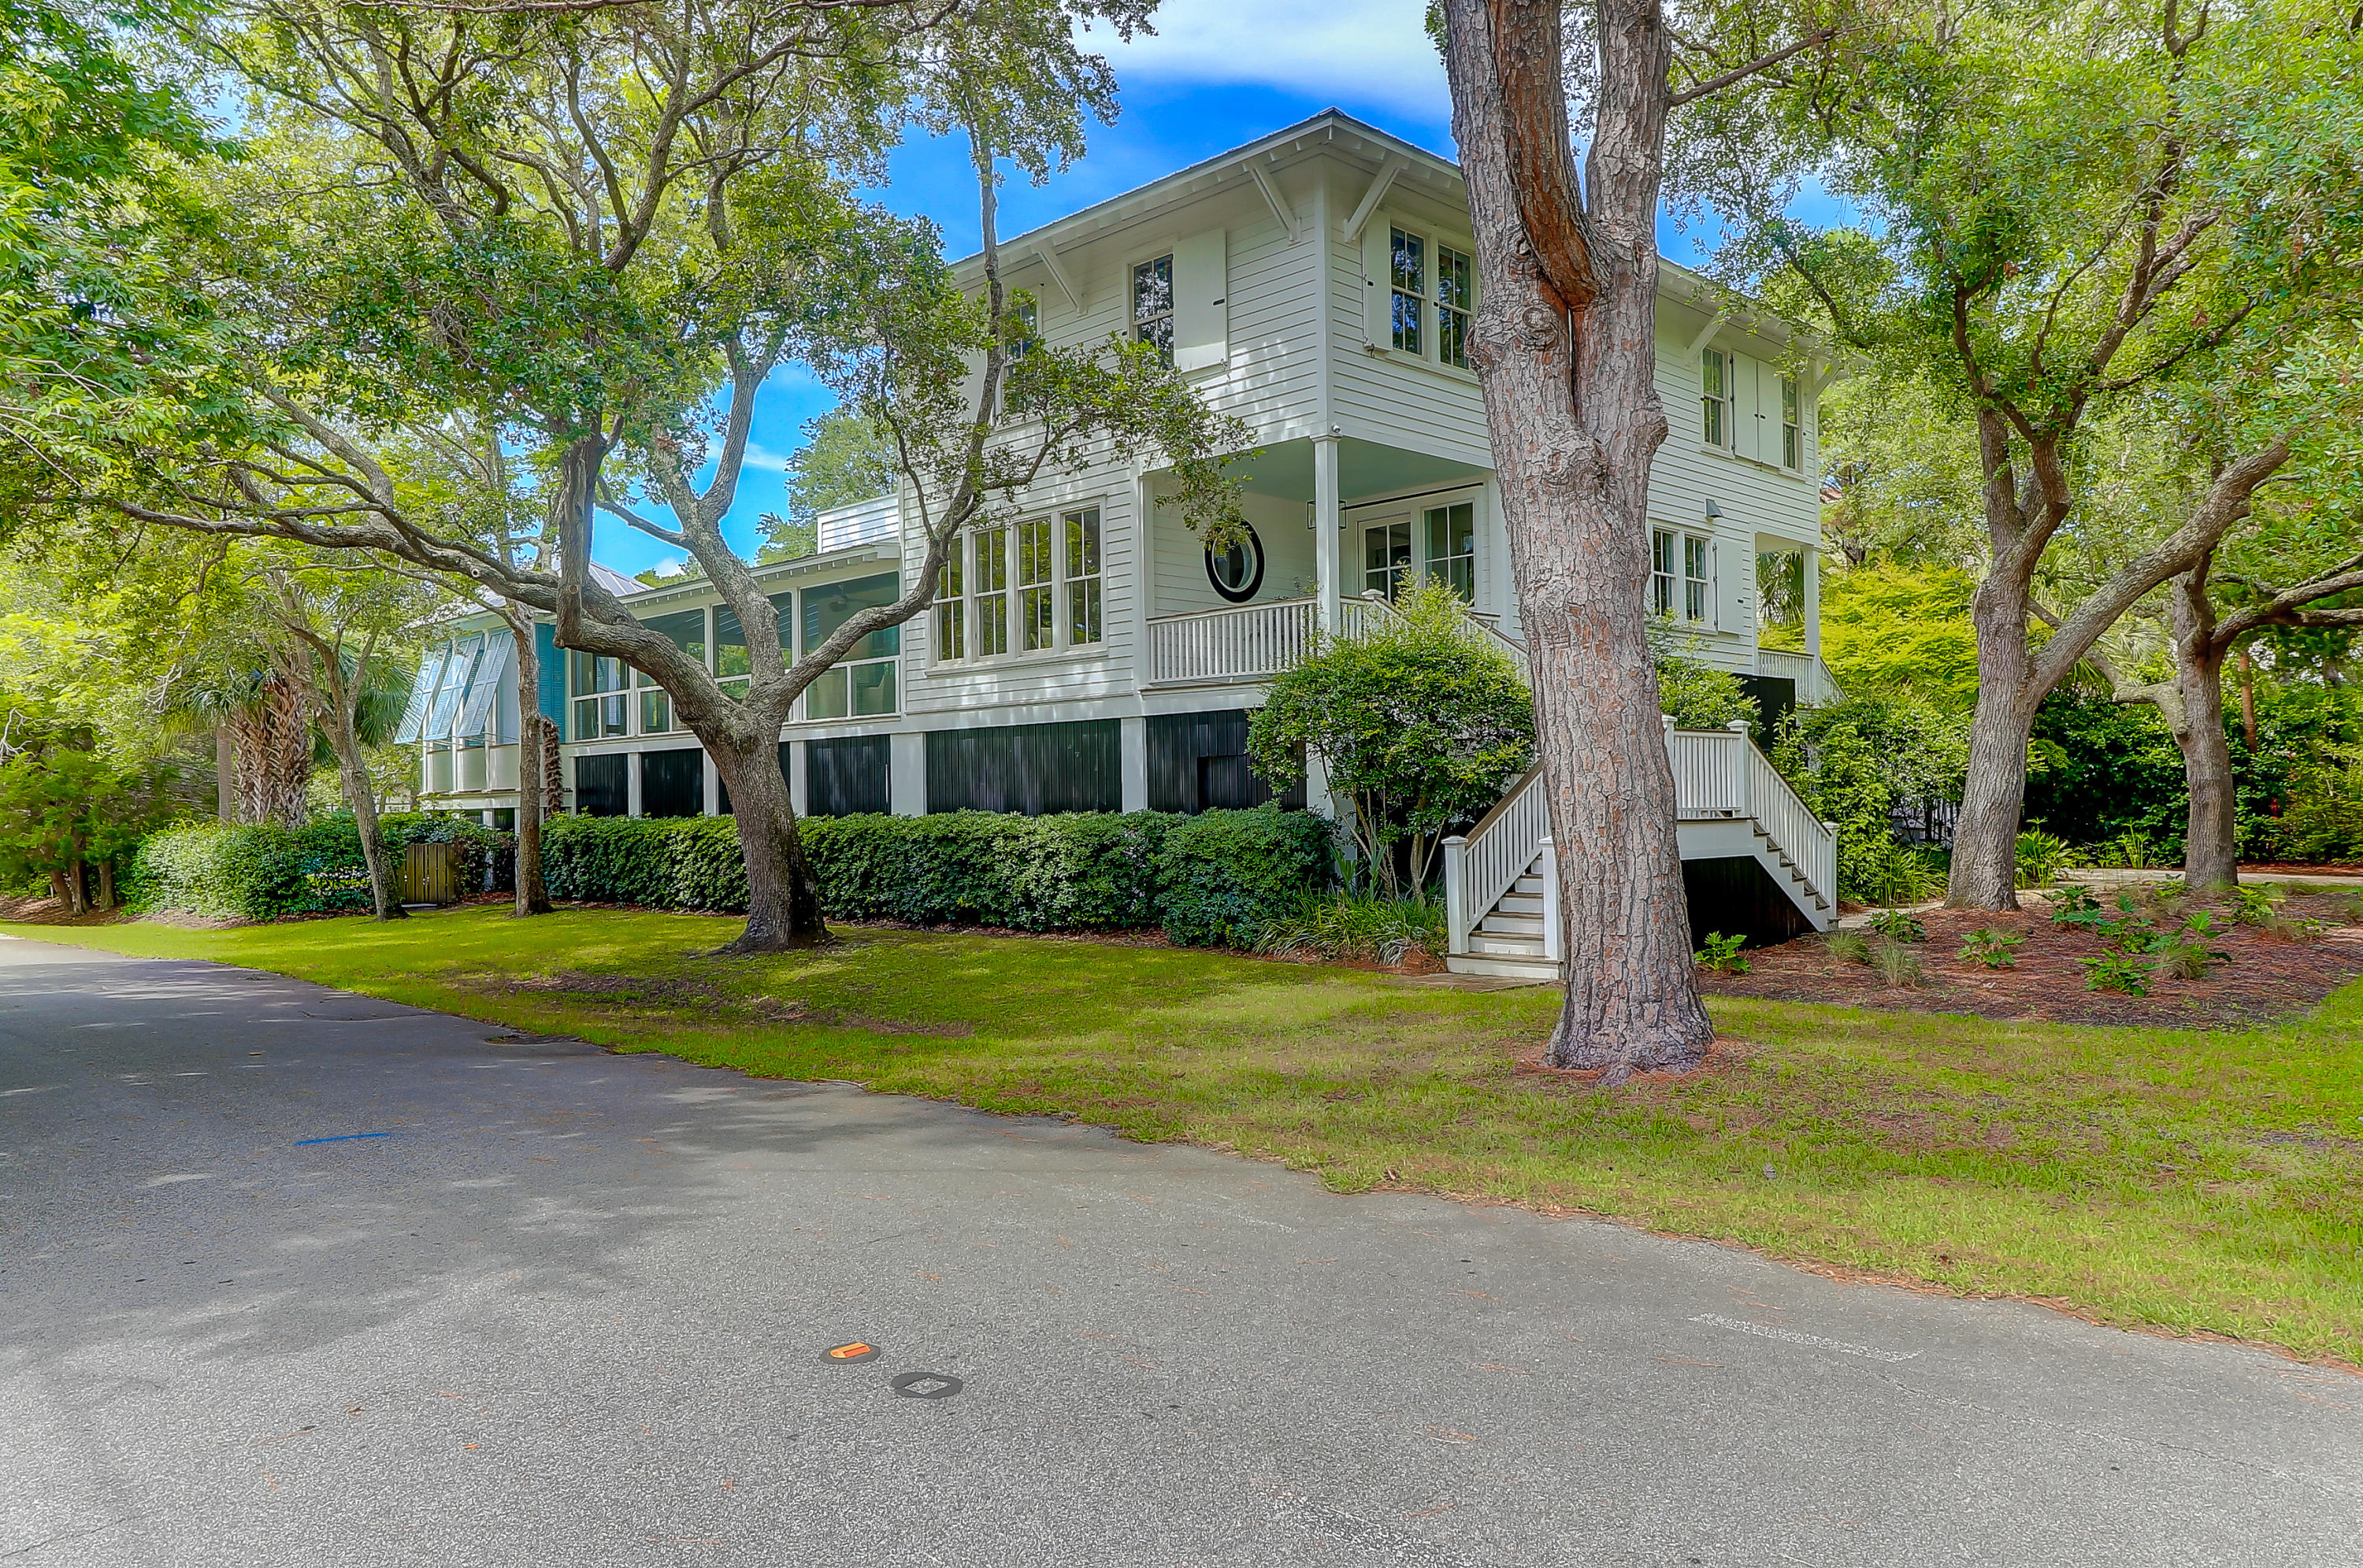 Sullivans Island Homes For Sale - 2402 Goldbug, Sullivans Island, SC - 24